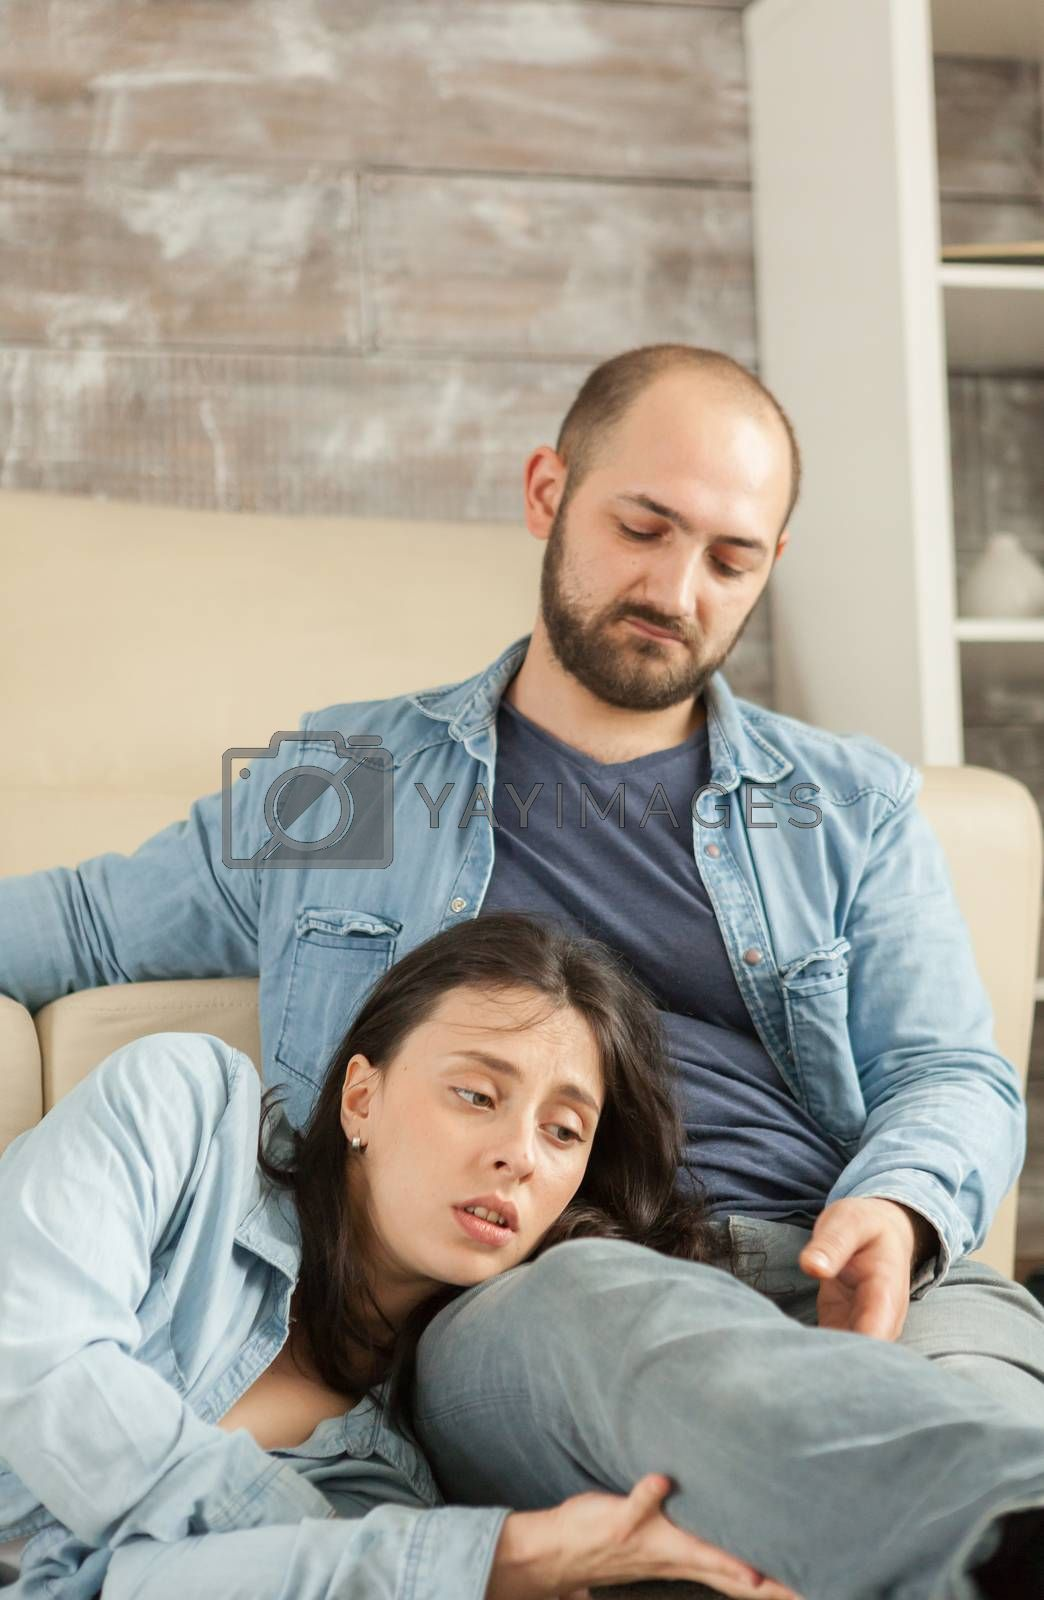 Husband looking at wife while resting together on living room rug.